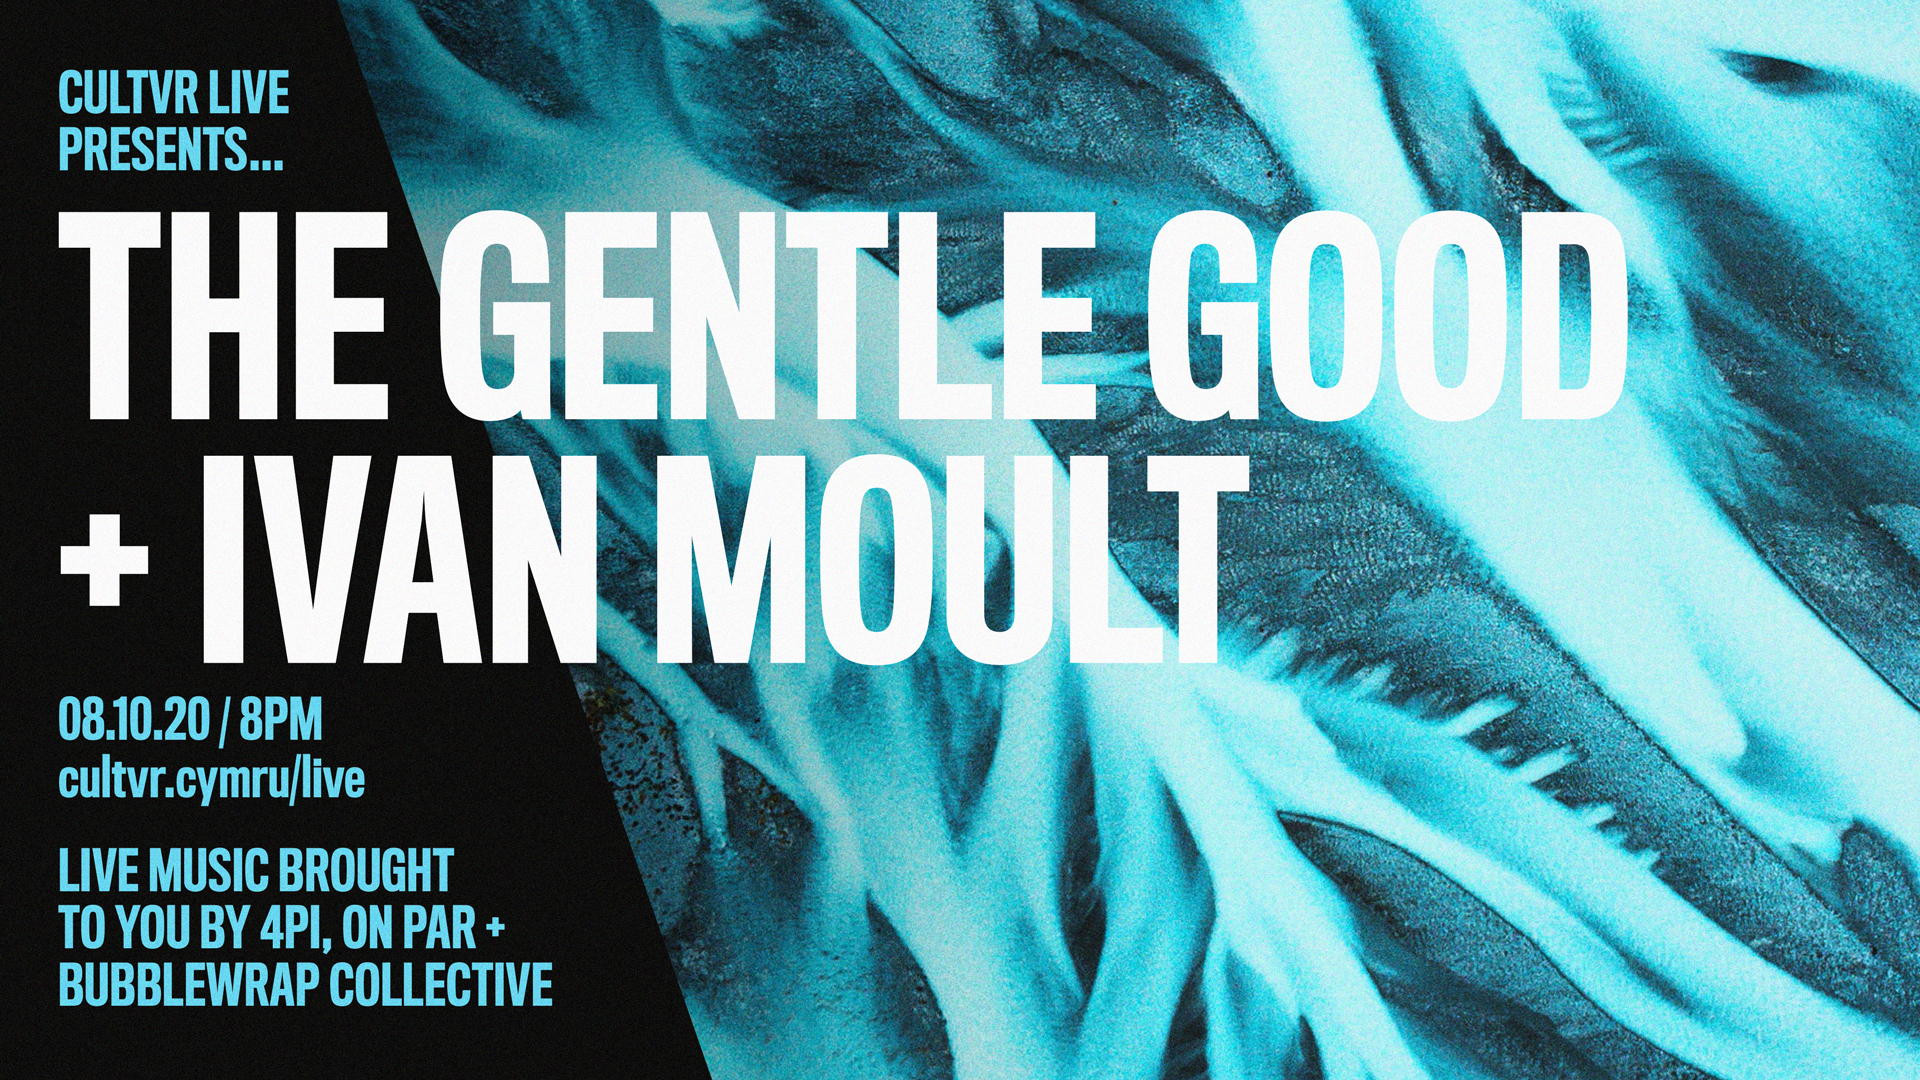 8TH OCTOBER / CULTVR LIVE: THE GENTLE GOOD + IVAN MOULT